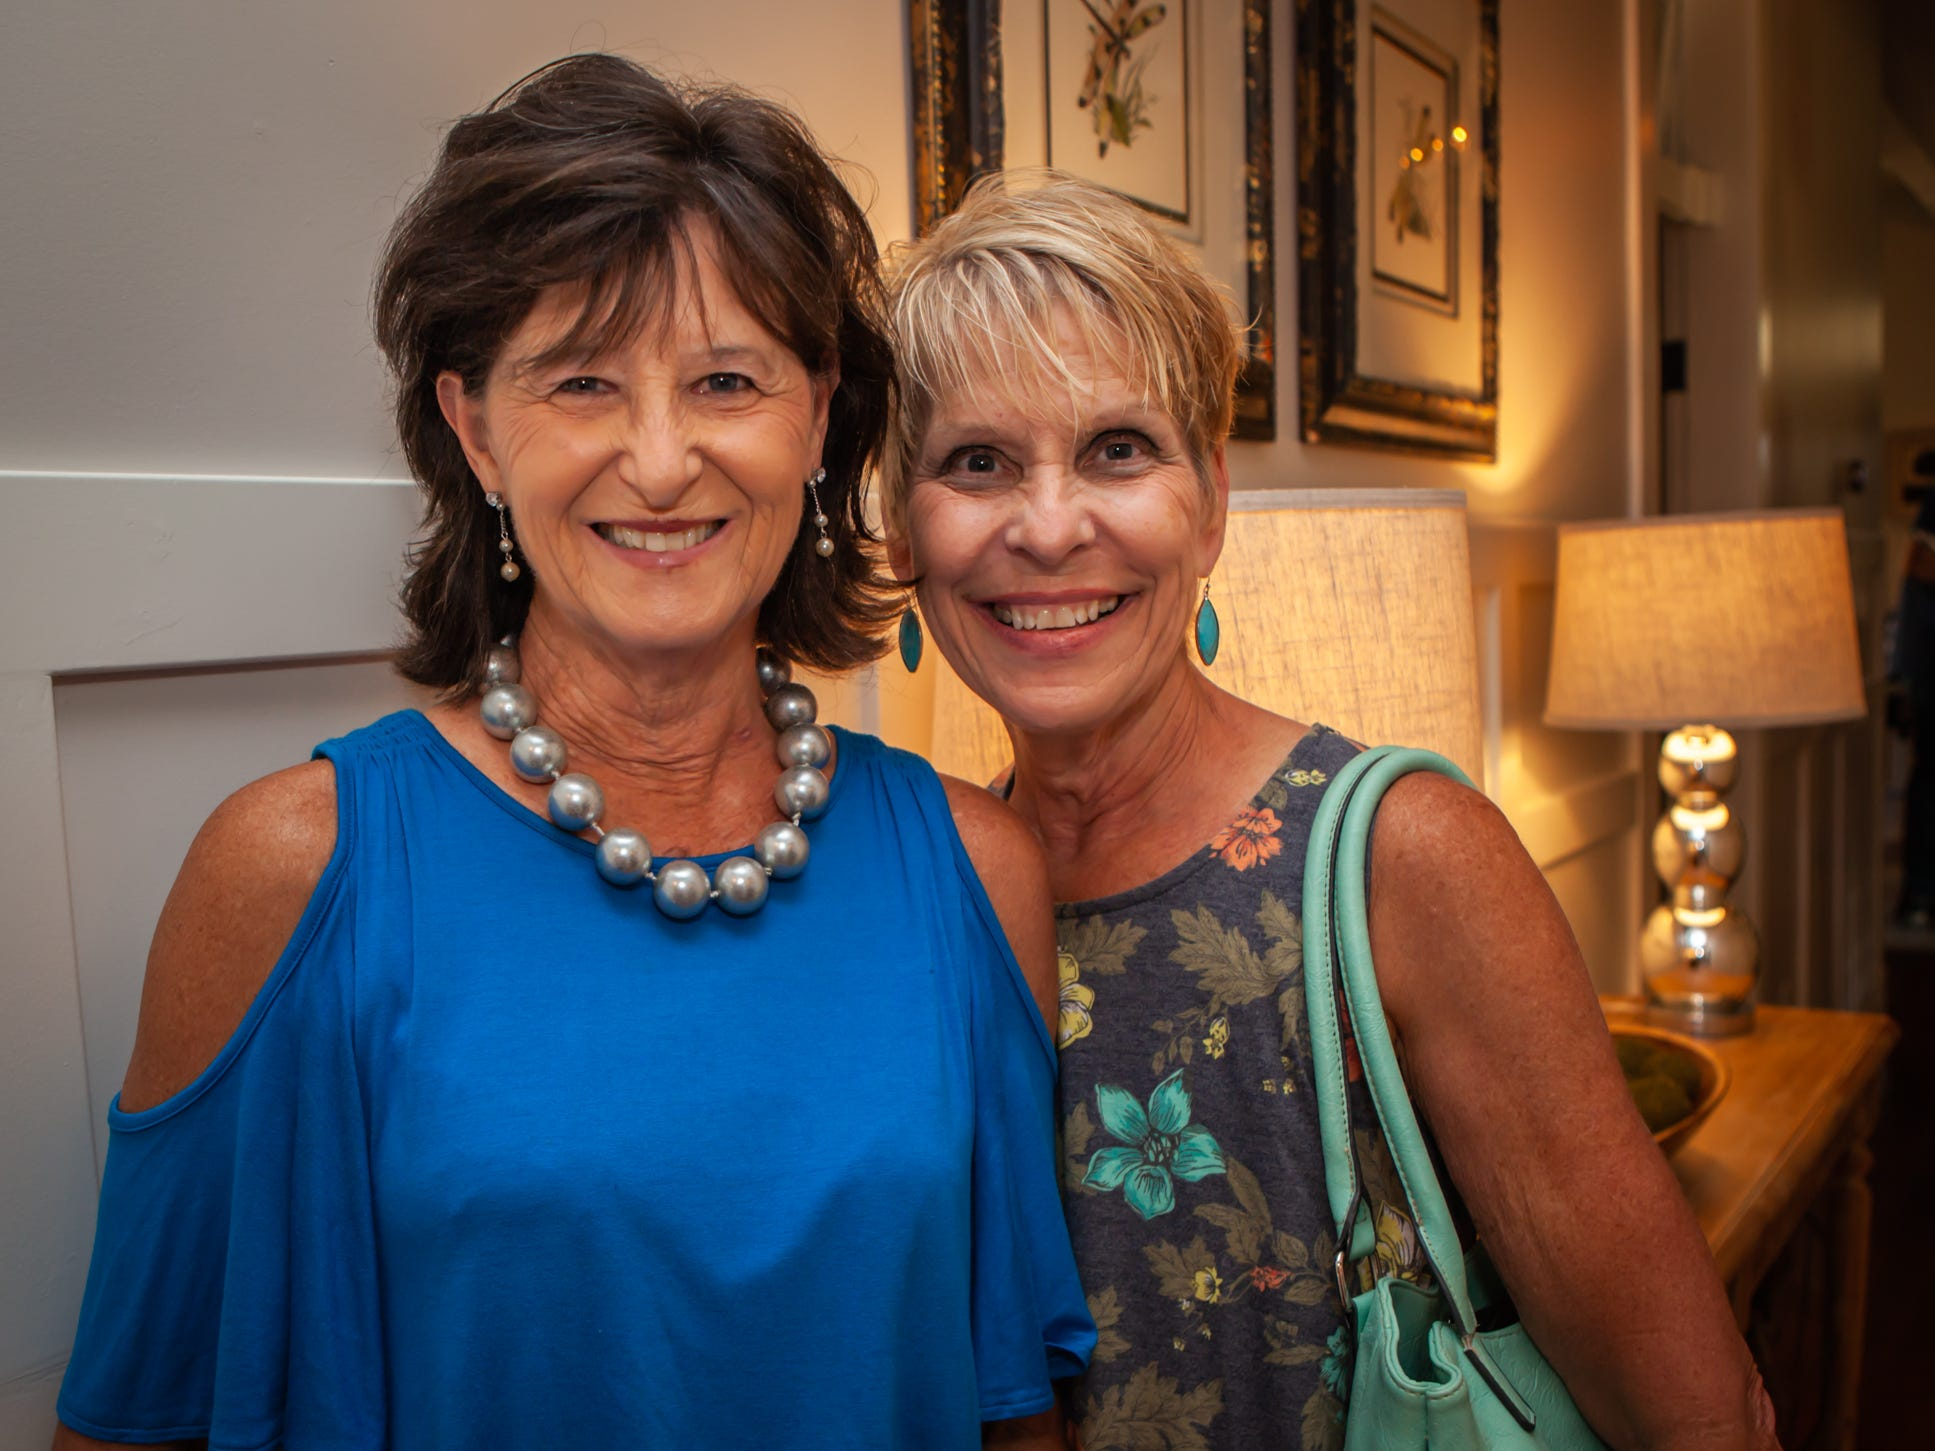 Brenda McFarlin and Debbie Williams at An Evening on Lytle, hosted by Main Street Murfreesboro/Rutherford County. The event was held at the home of Rick and Amy Cottle.